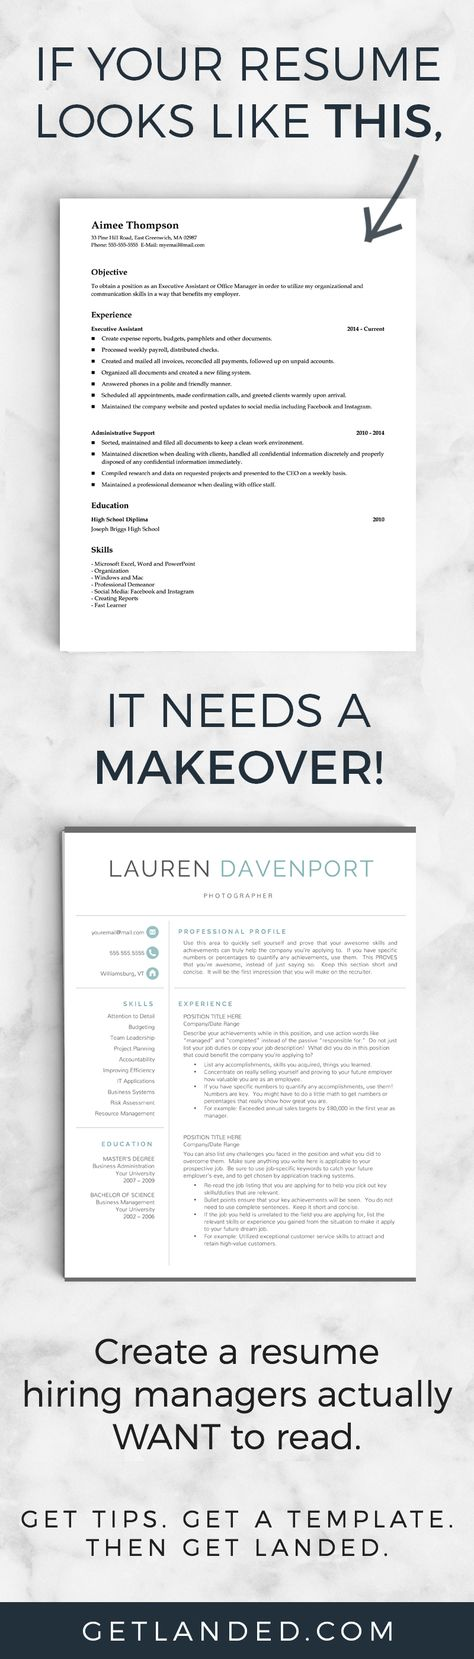 14 best images about Resumes on Pinterest Resume tips, Resume